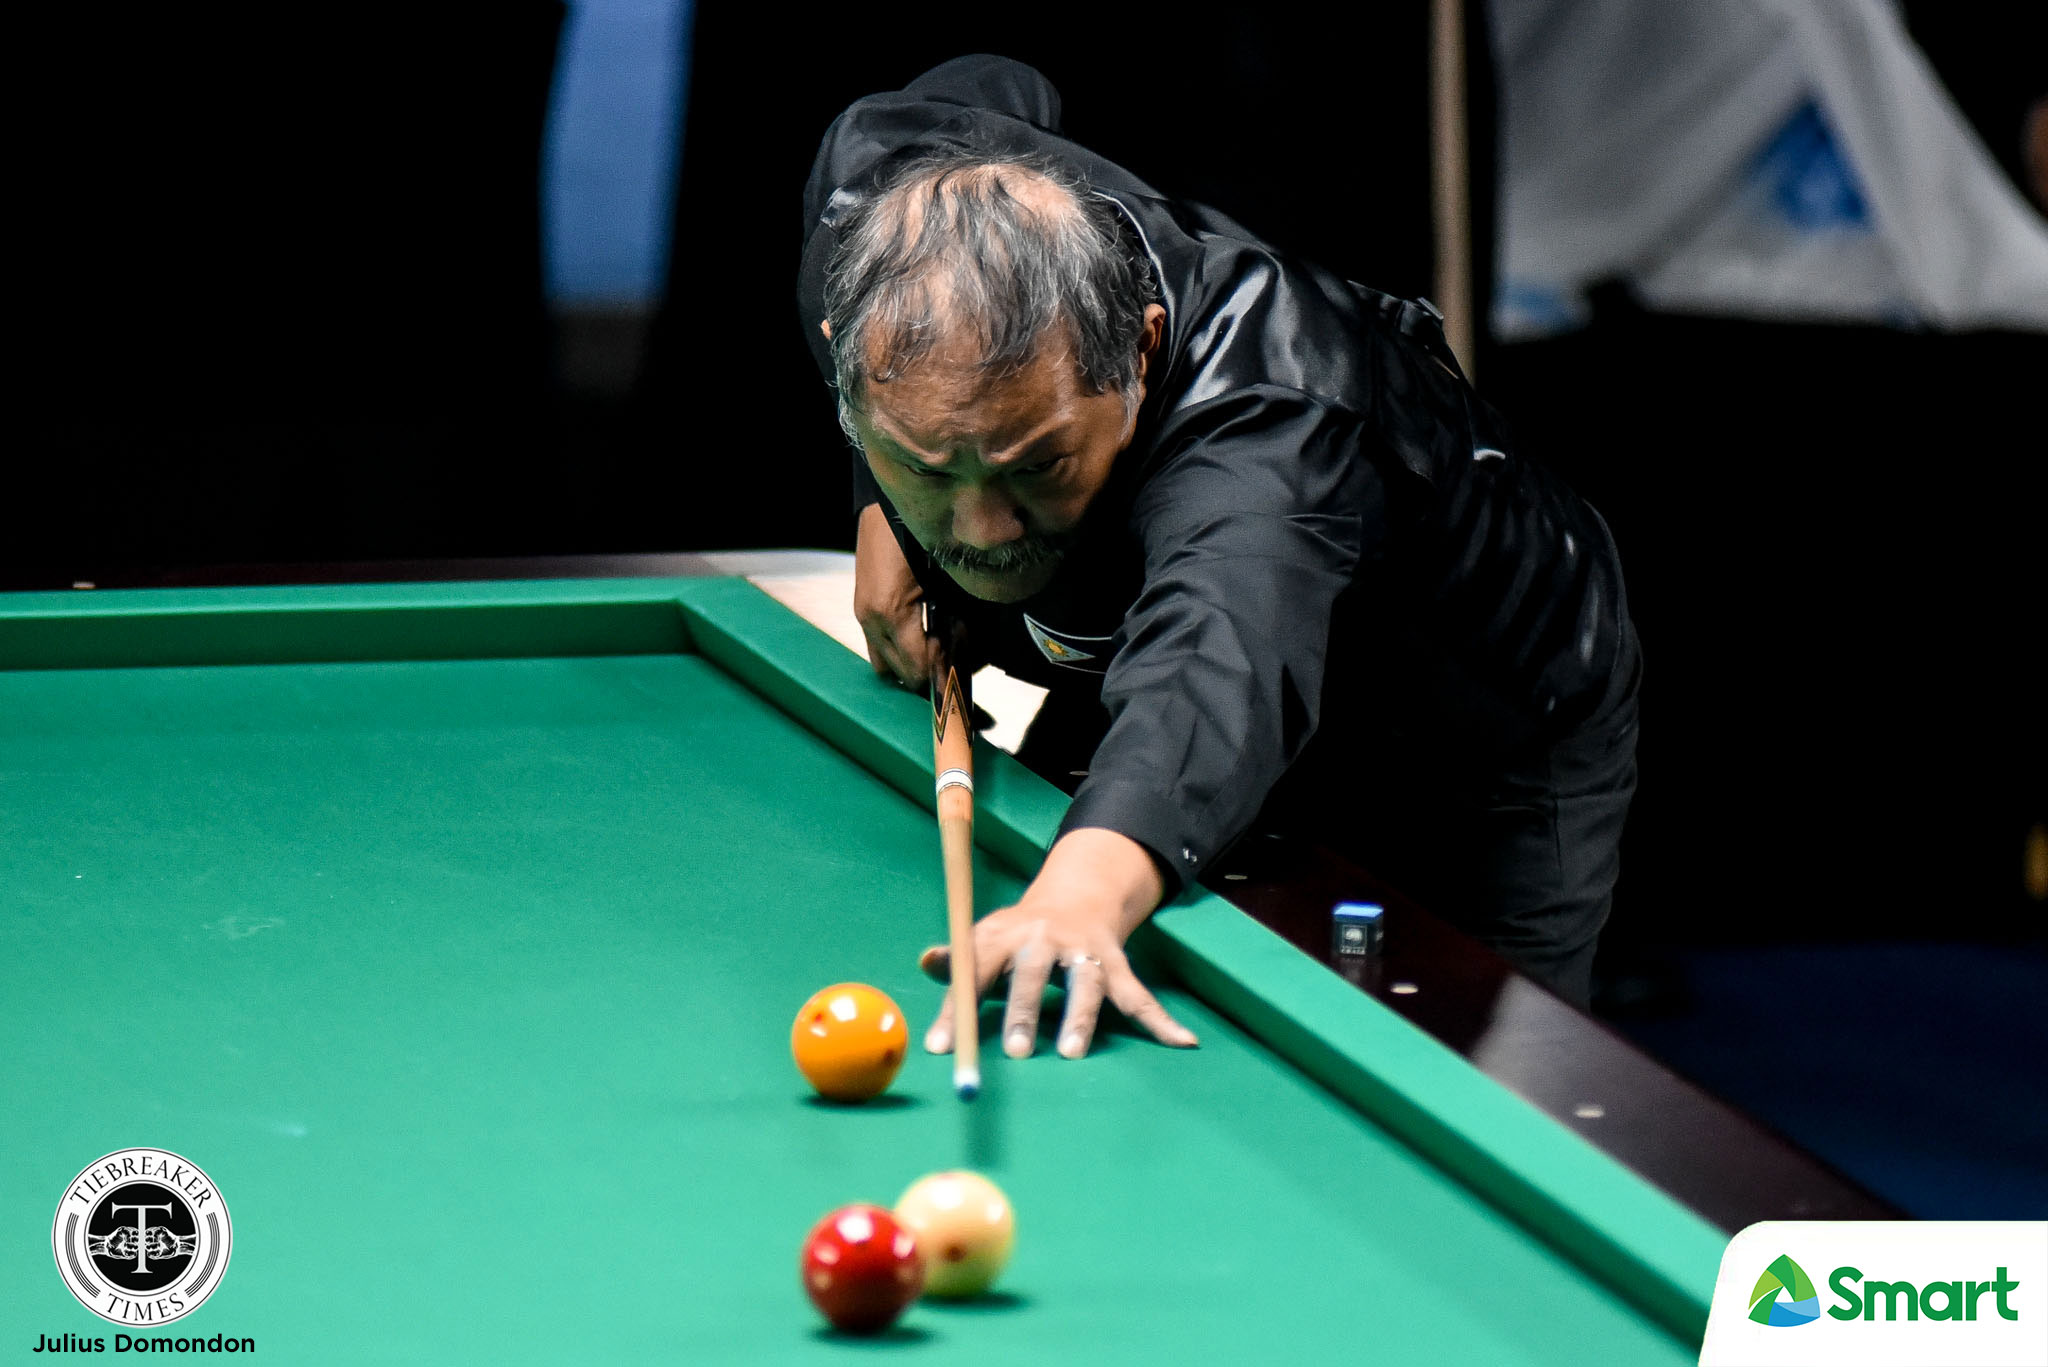 SEA-Games-2019-Billiards-Efren-Bata-Reyes Midlife Halftime Olympic Odyssey: Hidilyn Diaz cements place in pantheon of champions 2020 Tokyo Olympics Bandwagon Wire Weightlifting  - philippine sports news